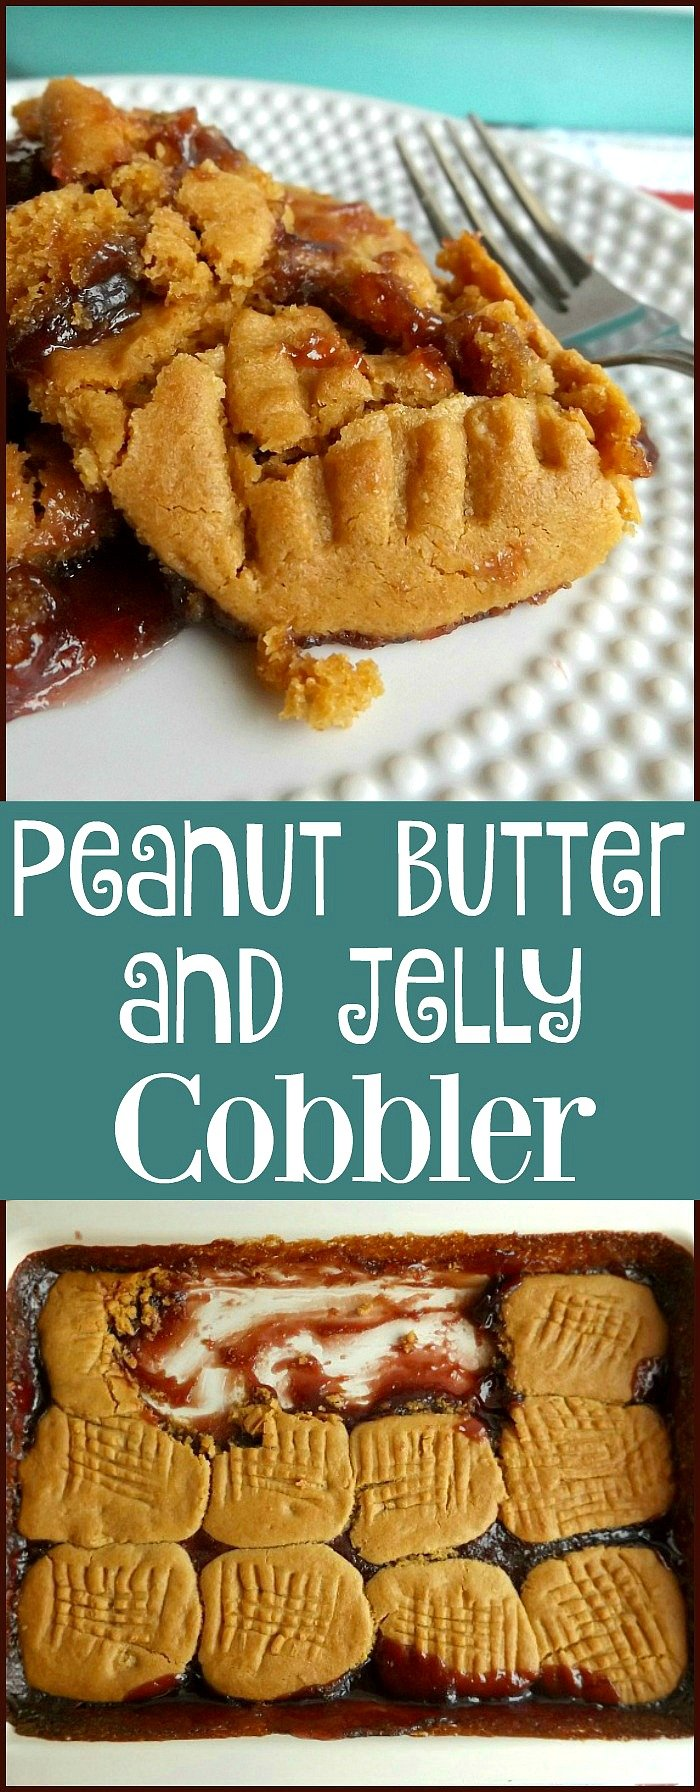 For a delicious dessert try this Peanut Butter and Jelly Cobbler family favorite sewlicioushomedecor.com